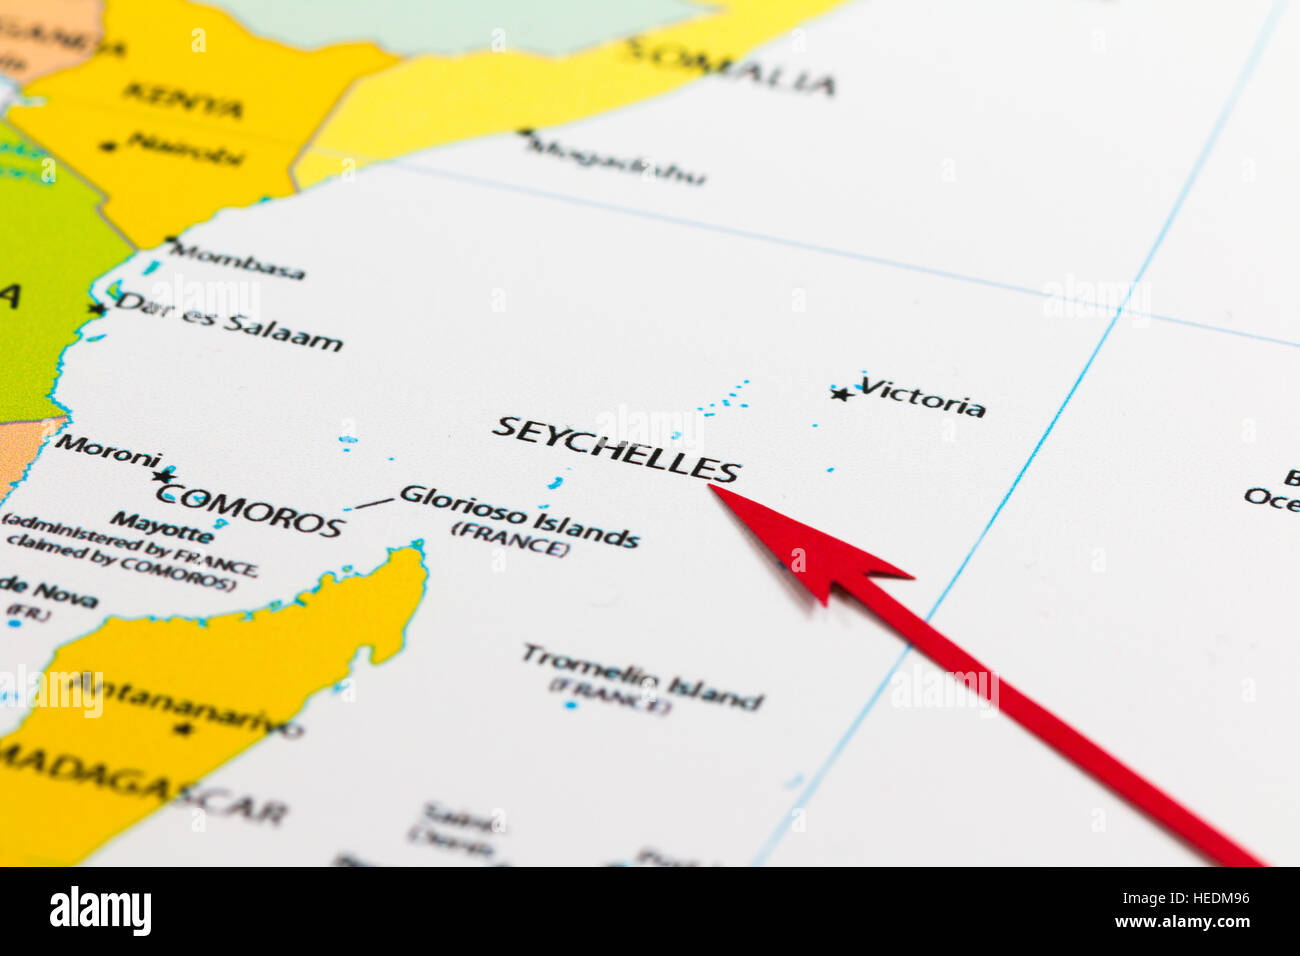 Red arrow pointing seychelles islands on the map of africa continent red arrow pointing seychelles islands on the map of africa continent gumiabroncs Image collections